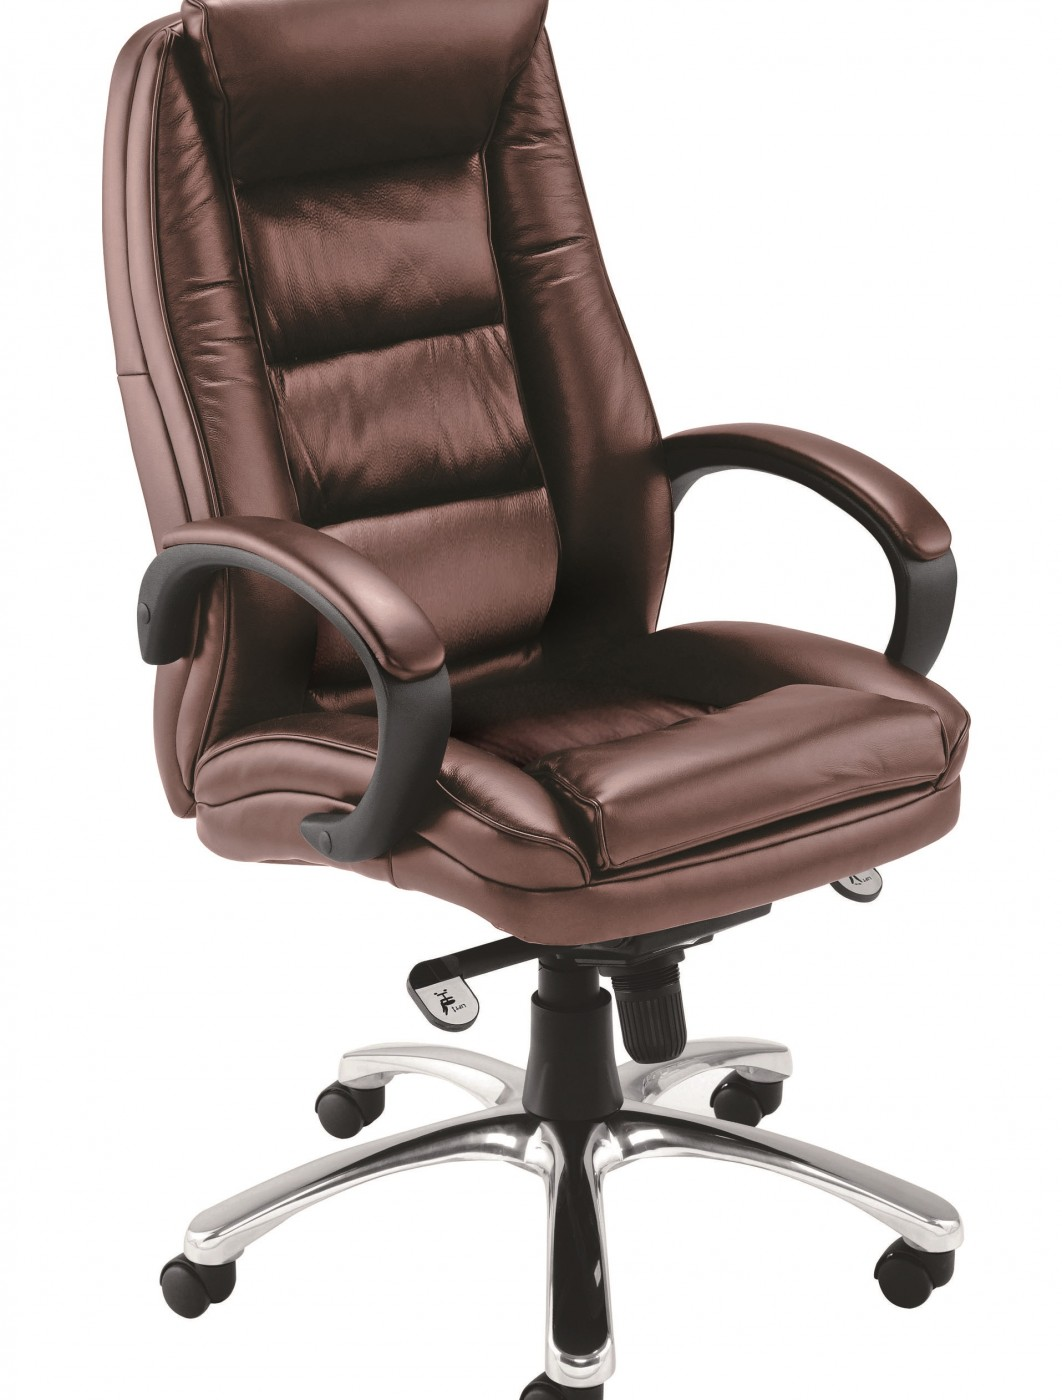 leather chair office small lounge chairs montana executive ch0240 121